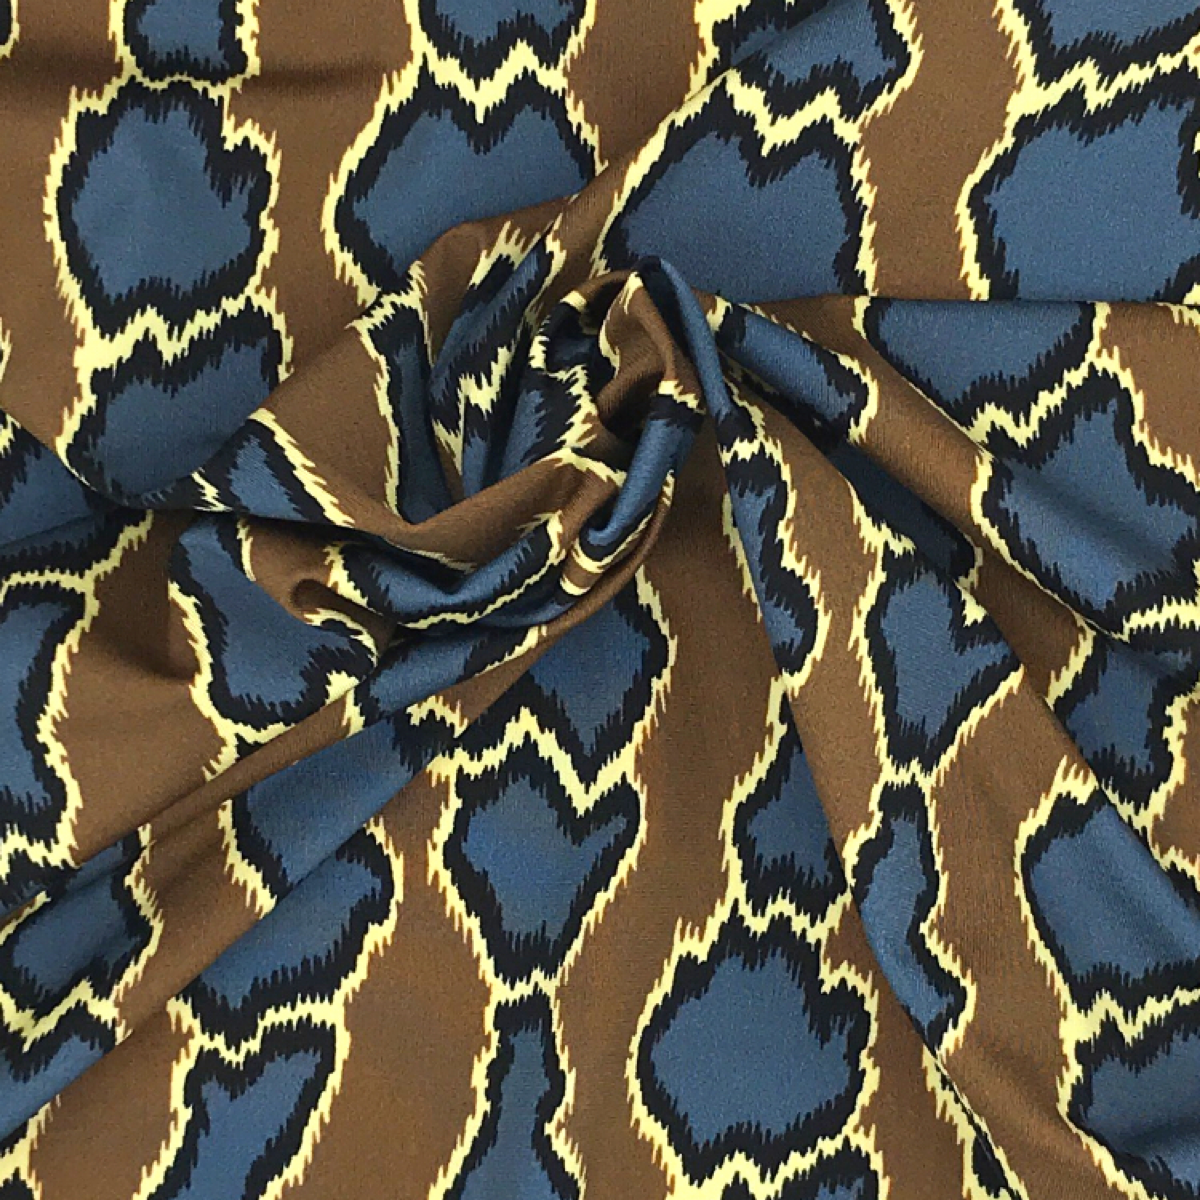 Brown, Blue, Yellow, and Black Animal Print Woven Textile by Beach & Body by Clerici Tessuto